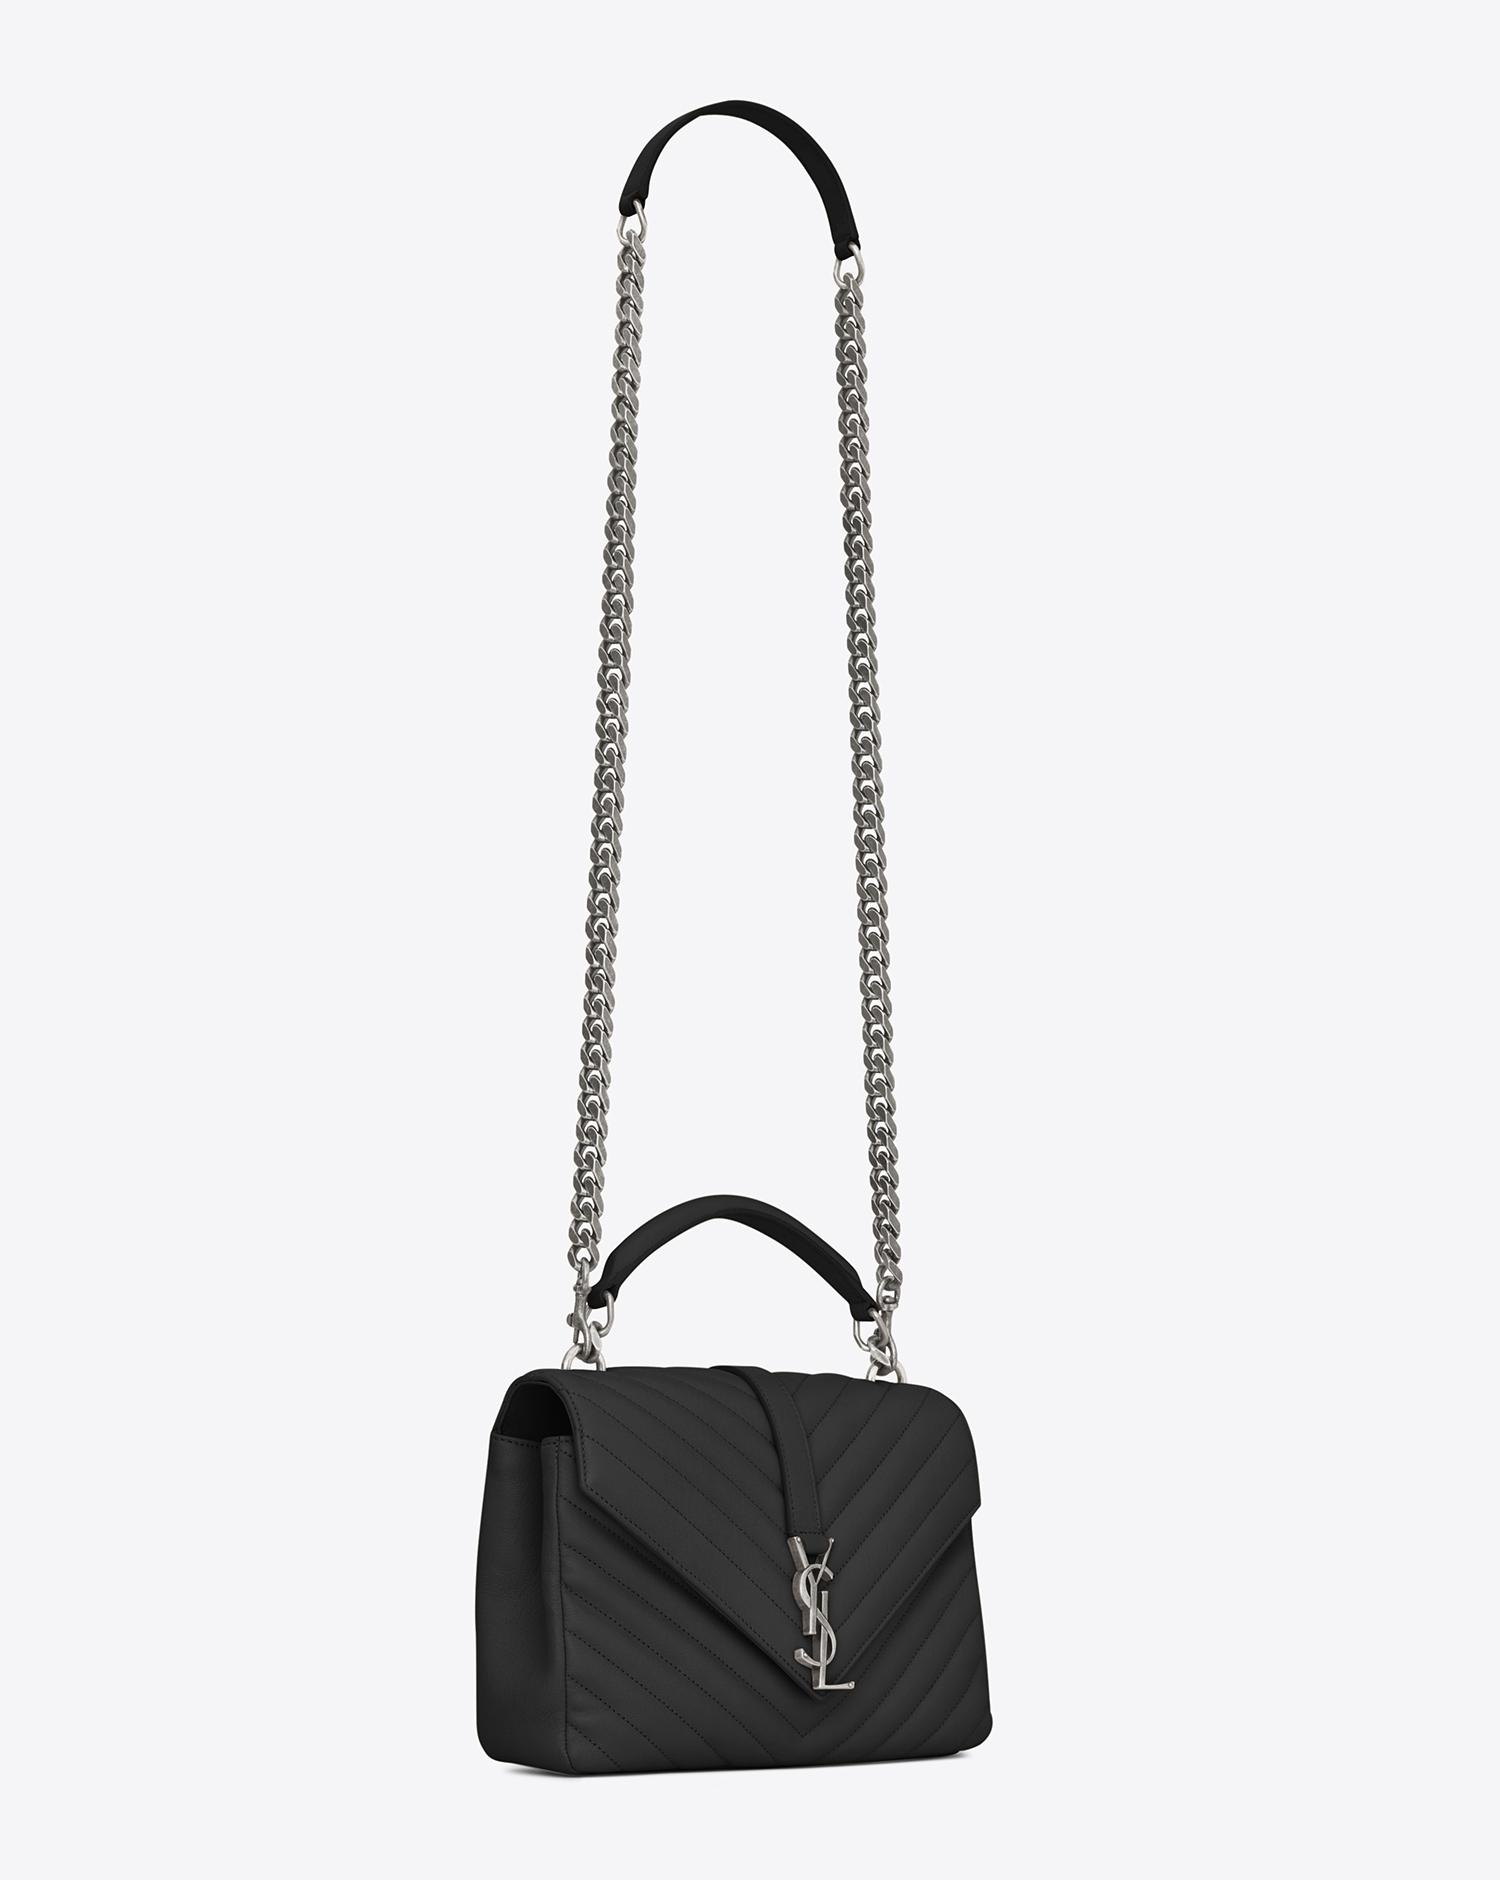 a417fdff5c36 Saint Laurent. Women s Black Monogram College Medium Quilted Leather  Shoulder Bag